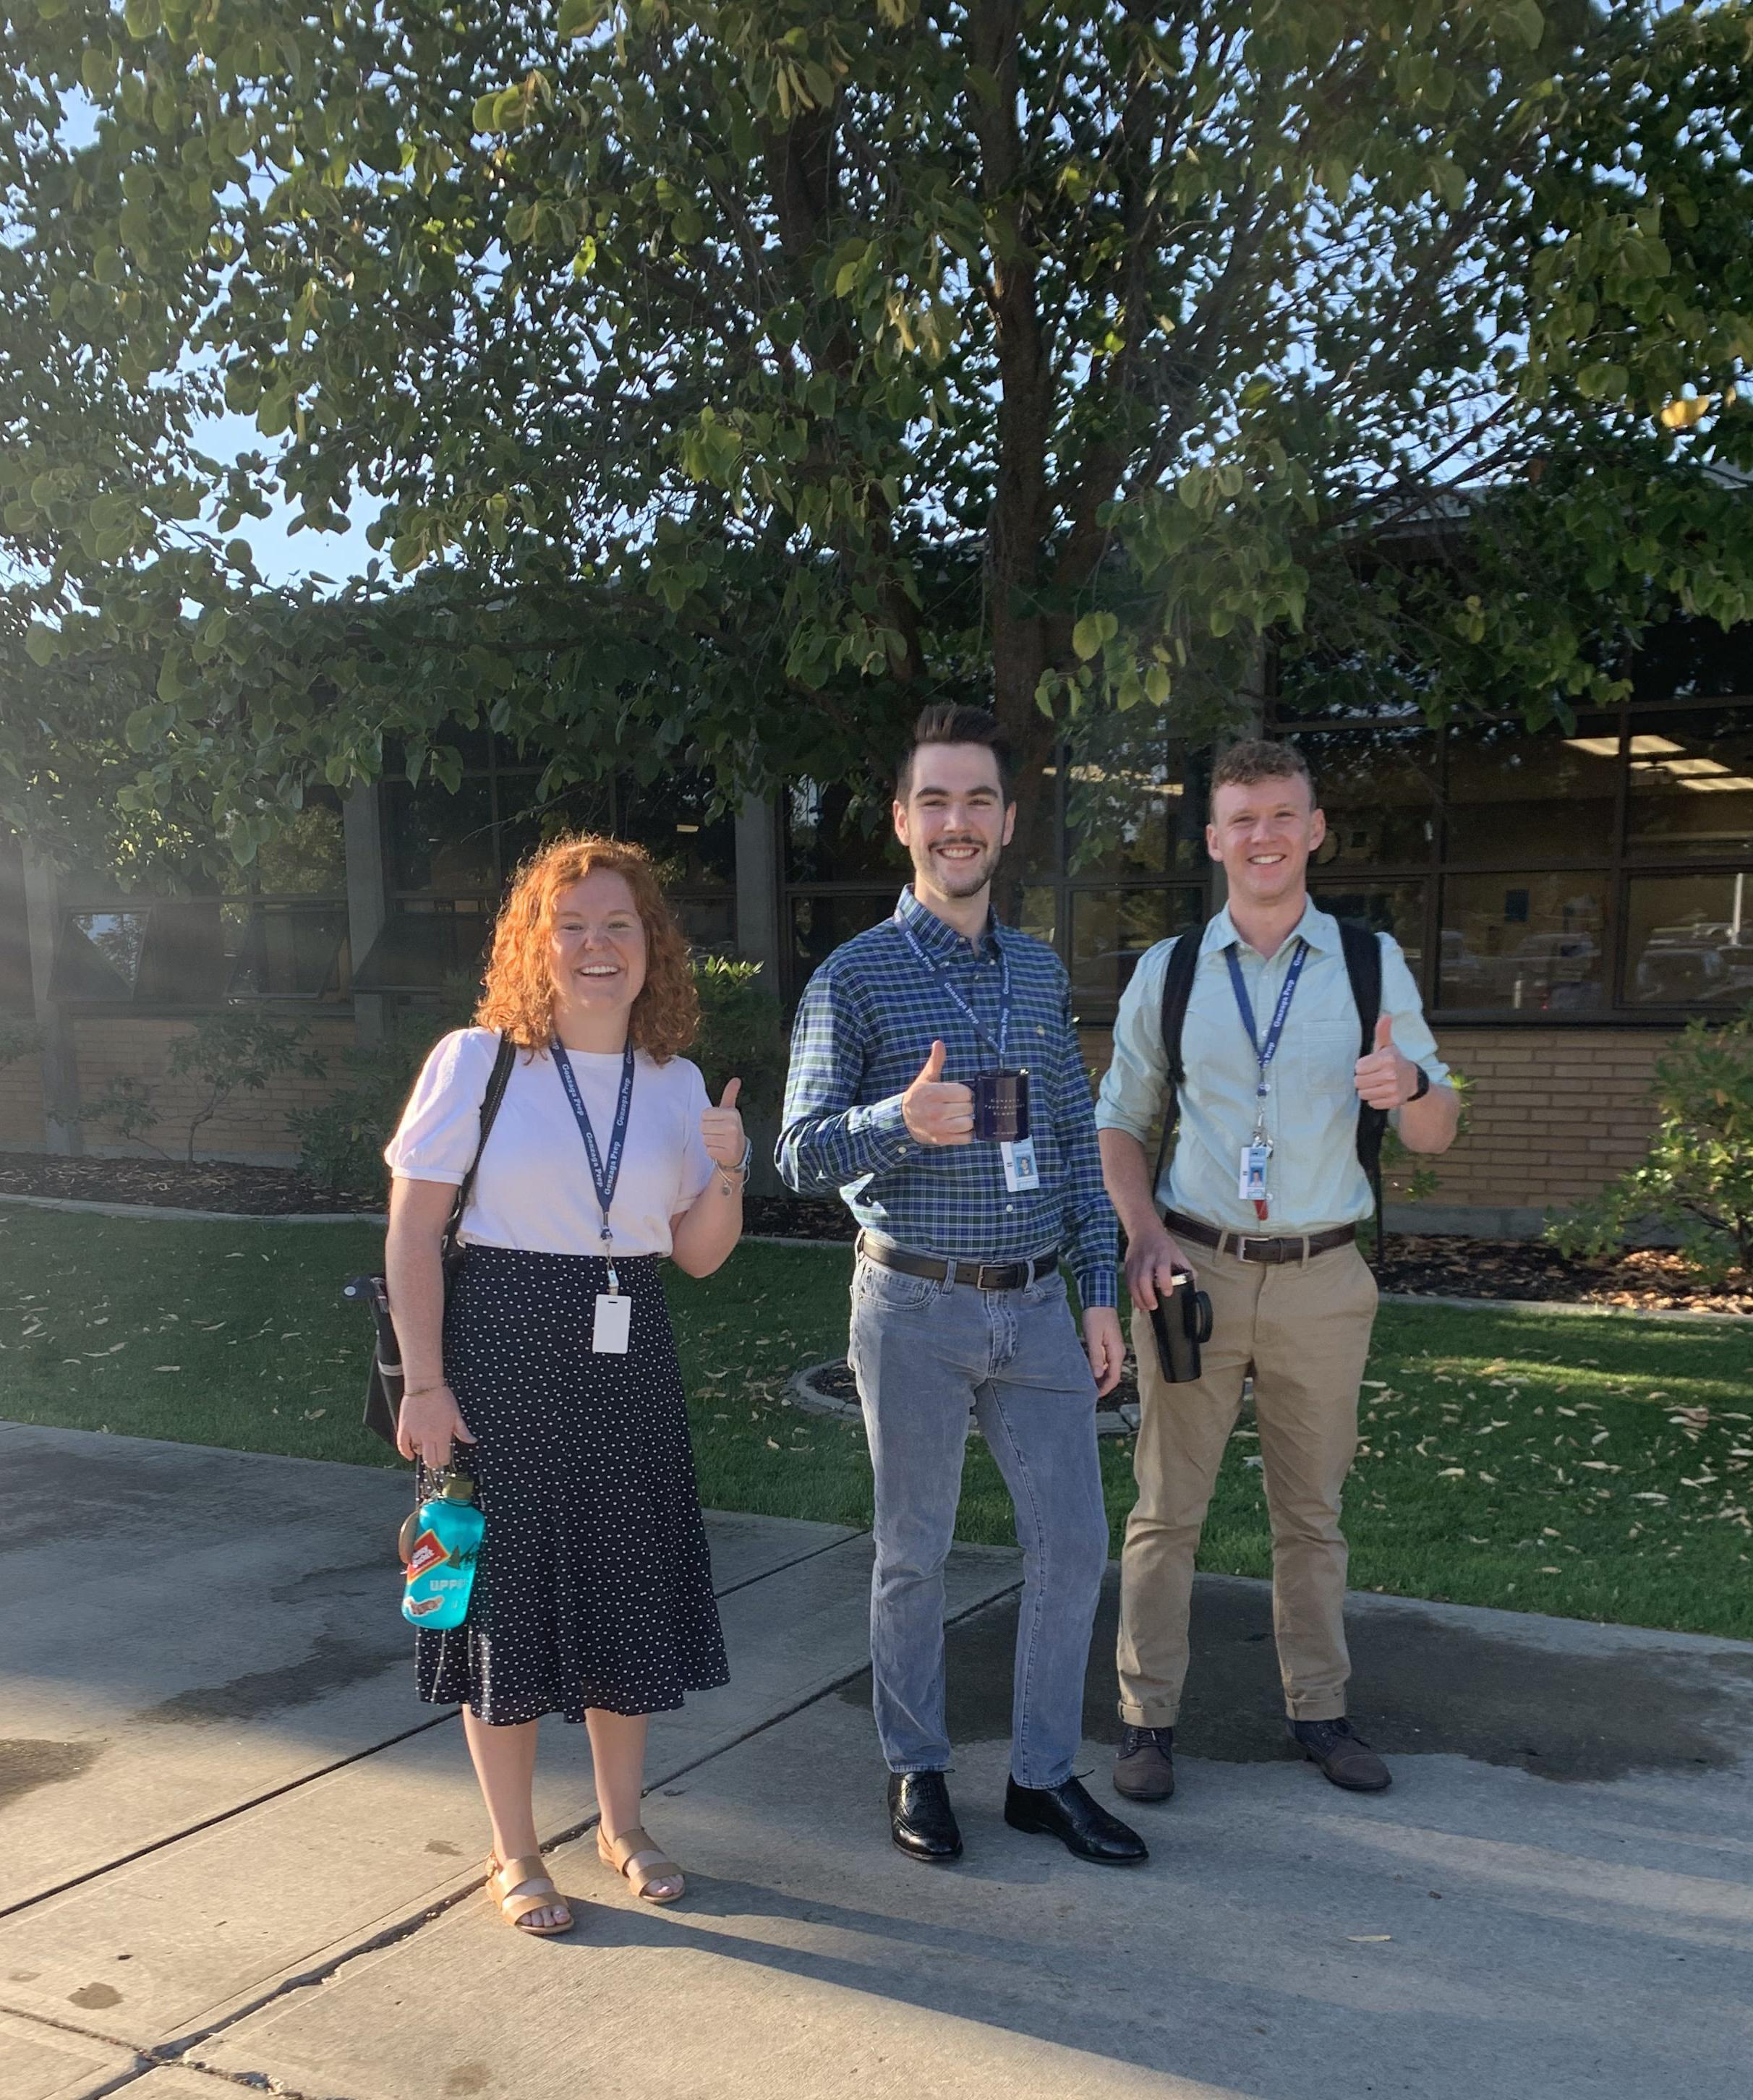 The 2019-2020 Alumni Service Corps volunteers: Hailey, Jack, and Liam.